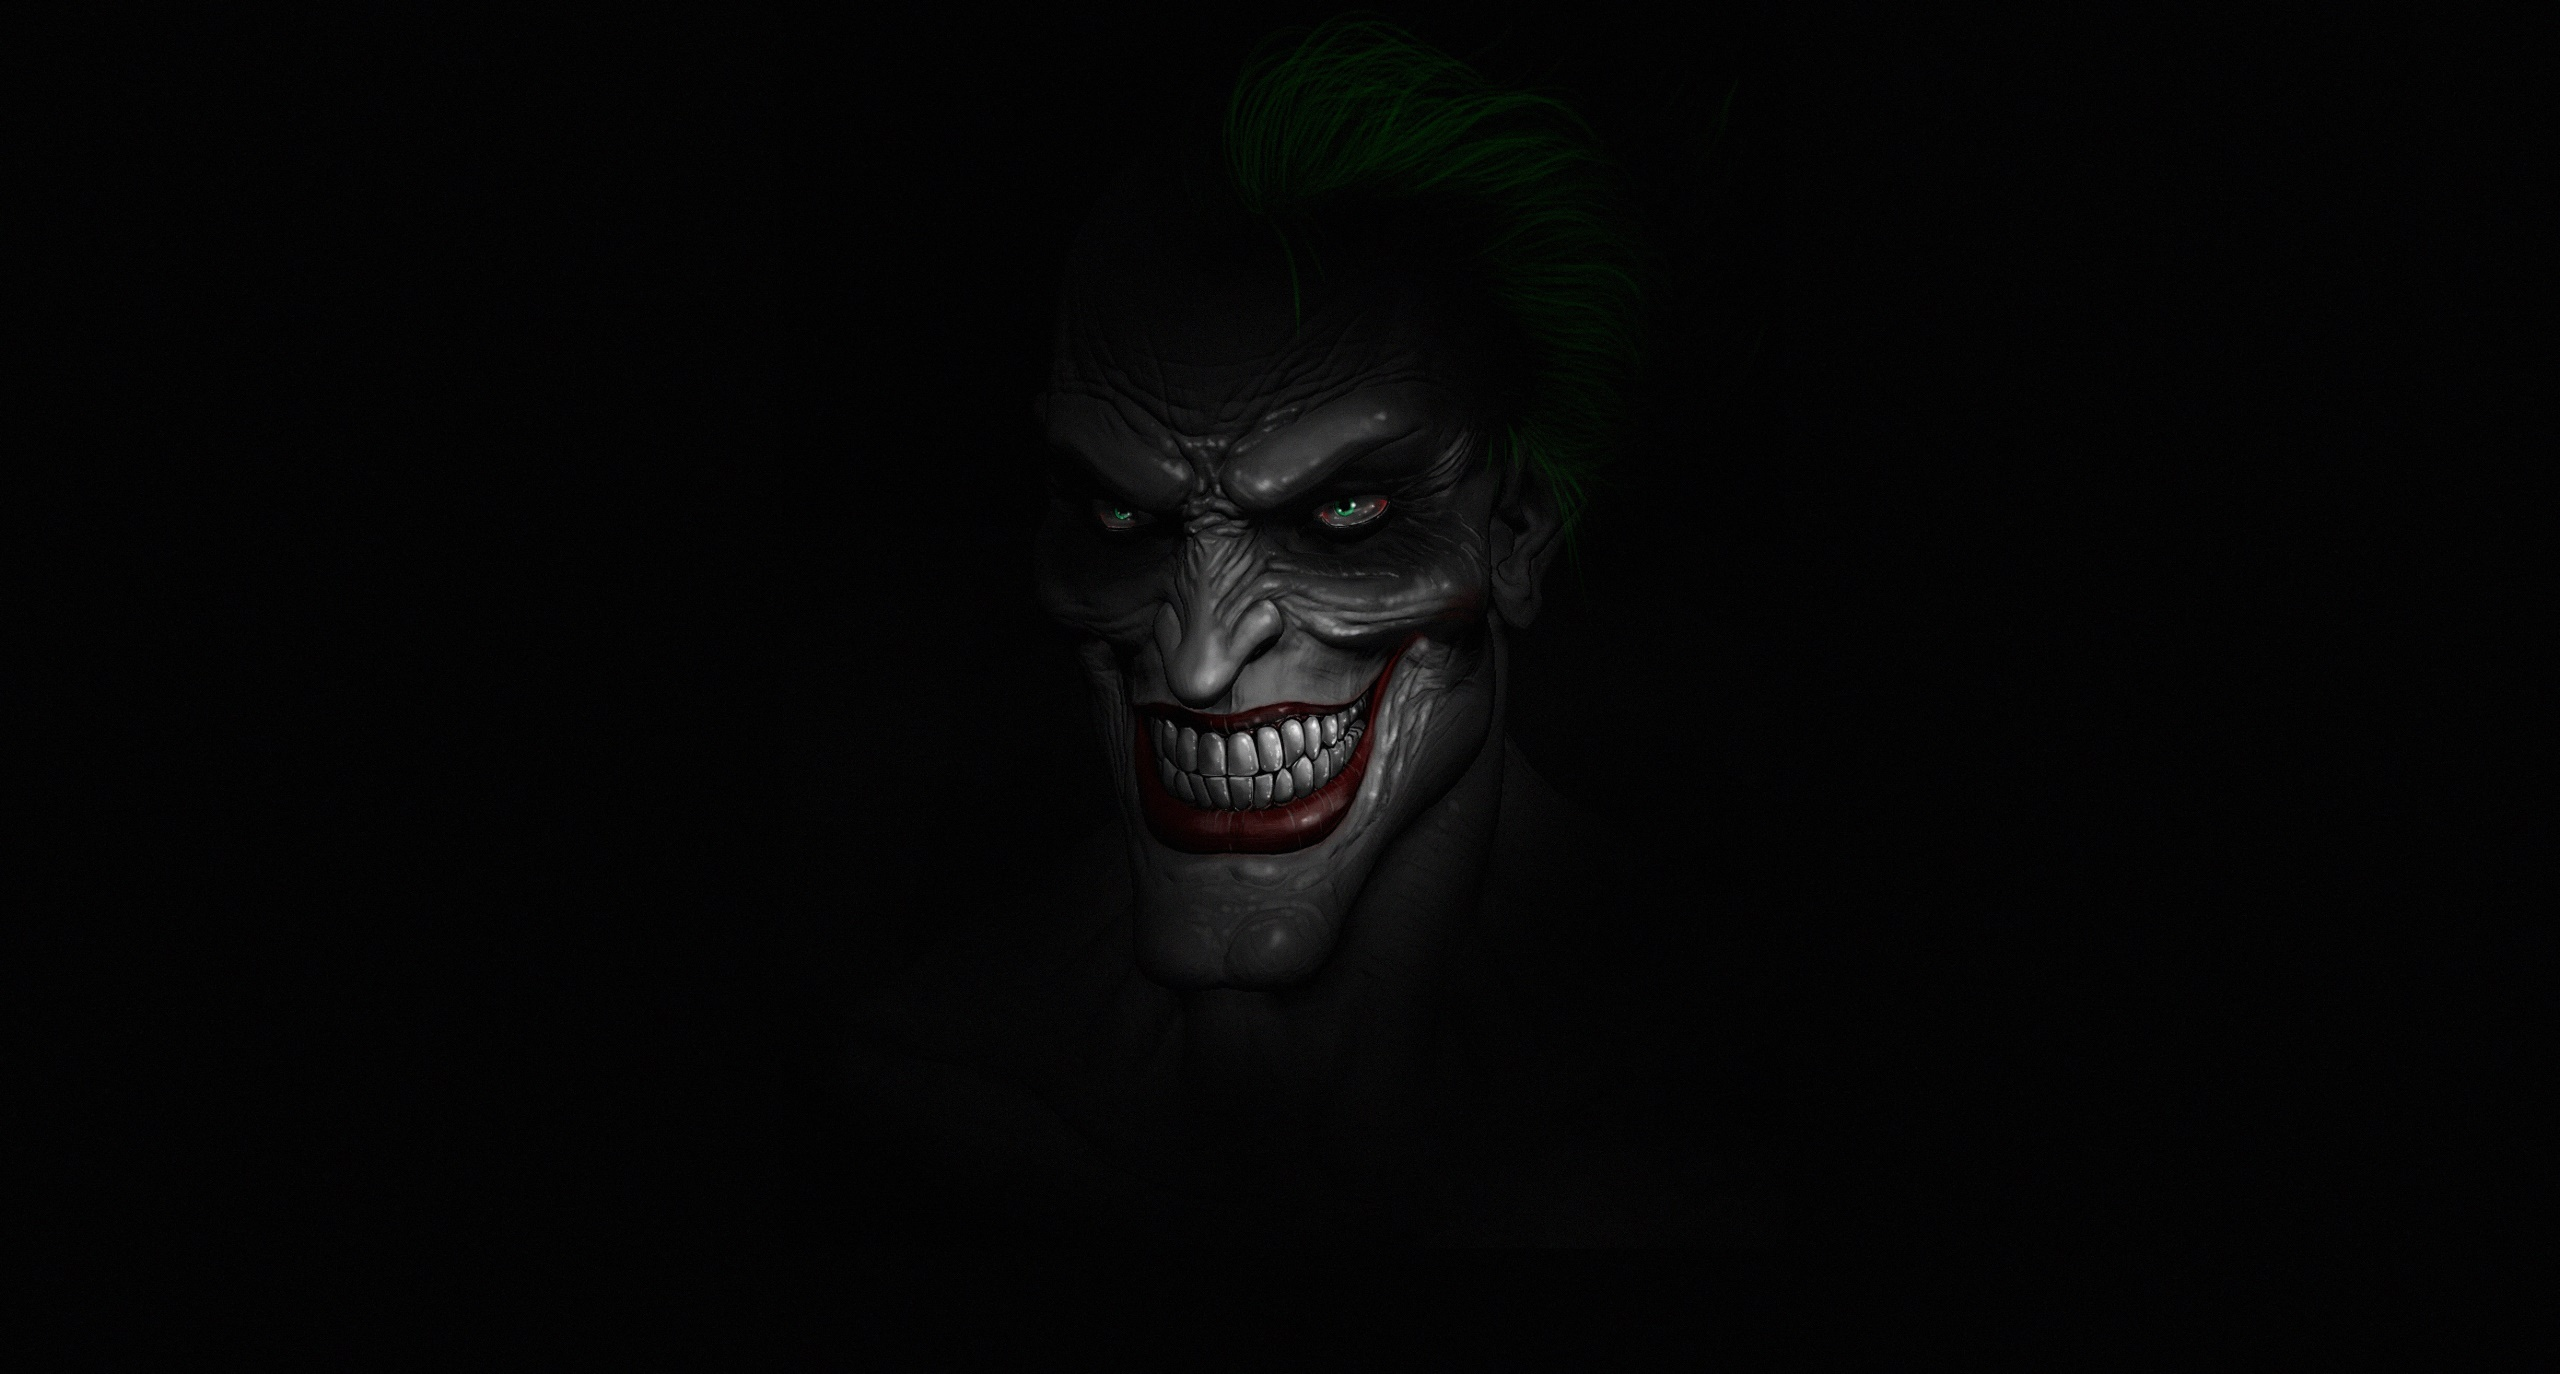 Joker Dark Minimalist Wallpapers Hd Wallpapers